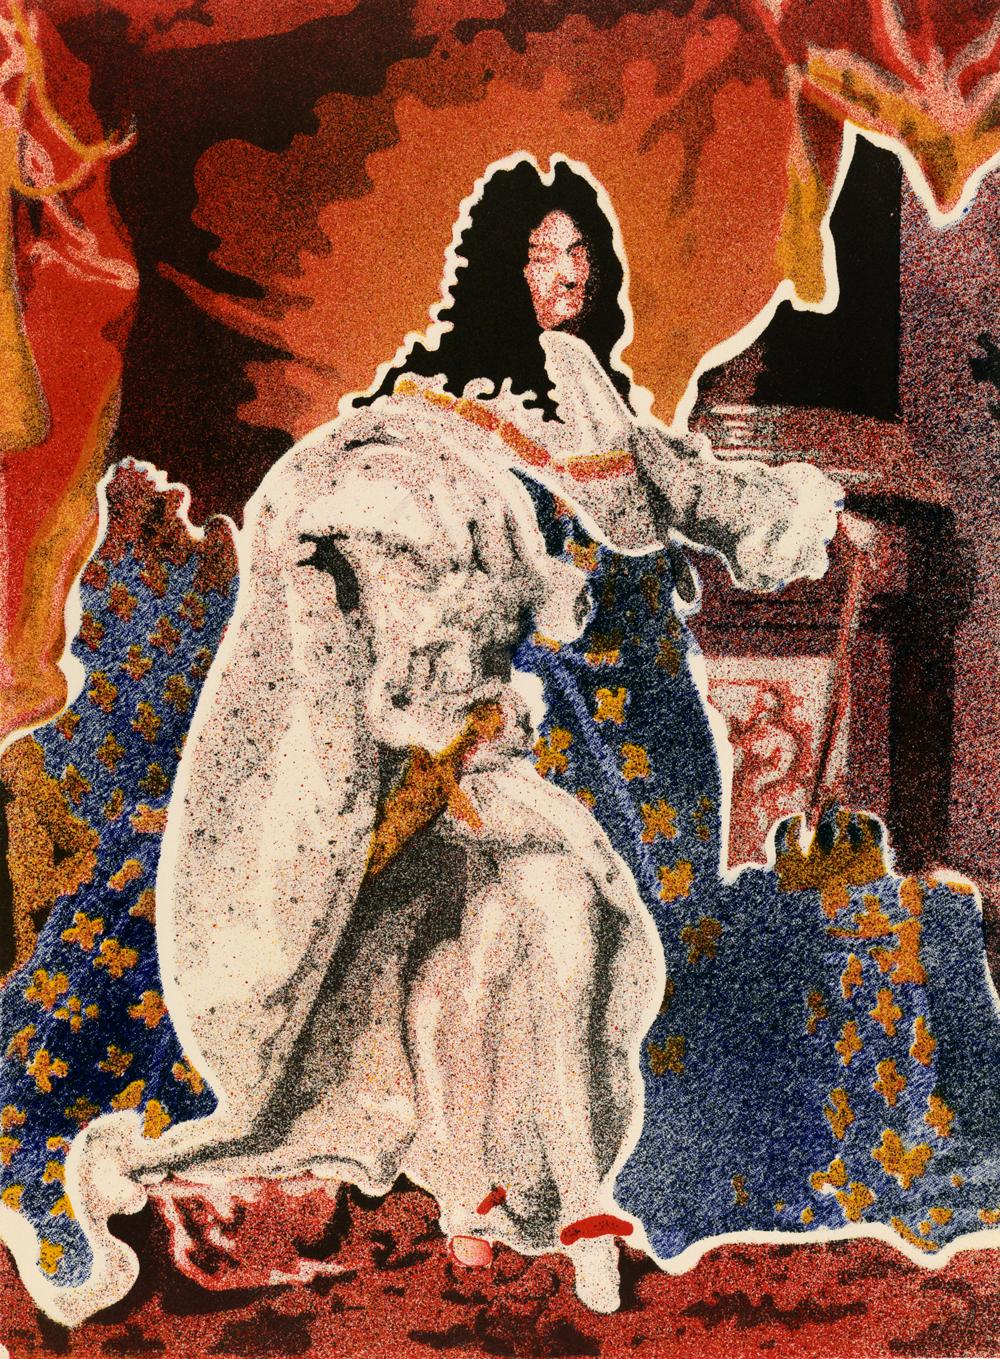 John Clem Clarke (United States, b. 1937), Louis XIV, 1969. Lithograph on paper. Gift of George M. Irwin 1995-9-2.4